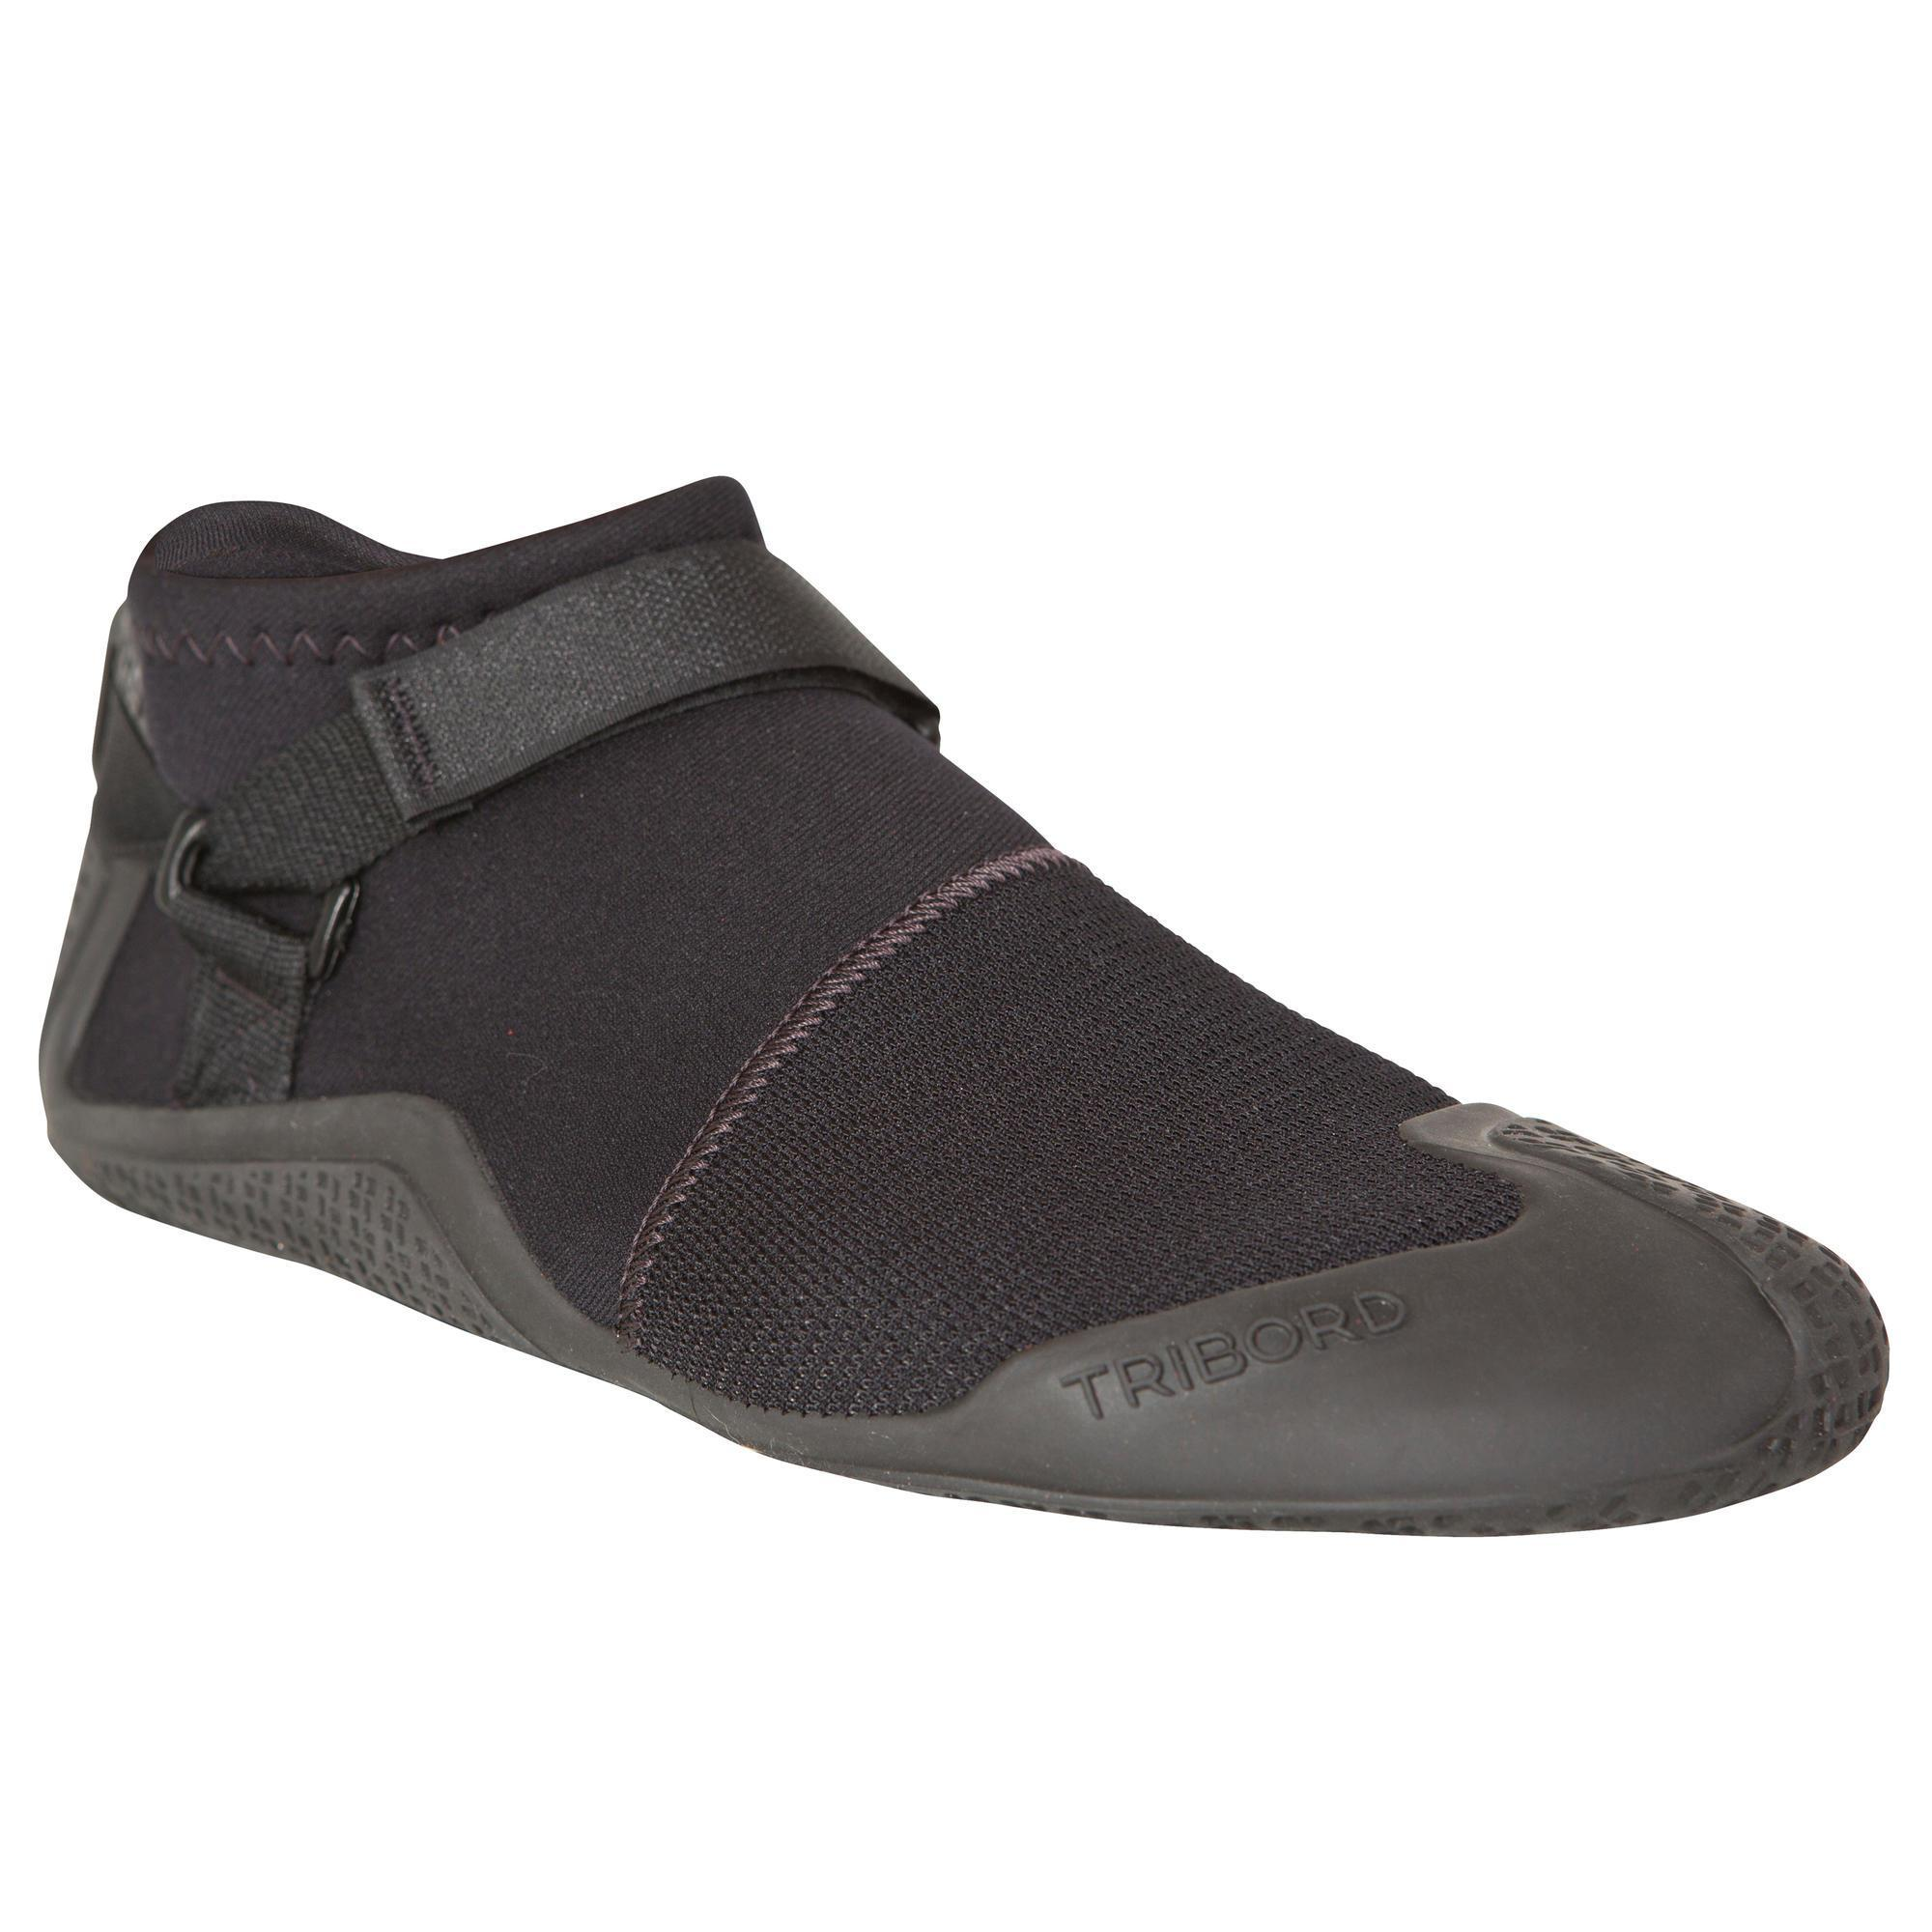 Olaian Surfschoenen in neopreen van 3 mm